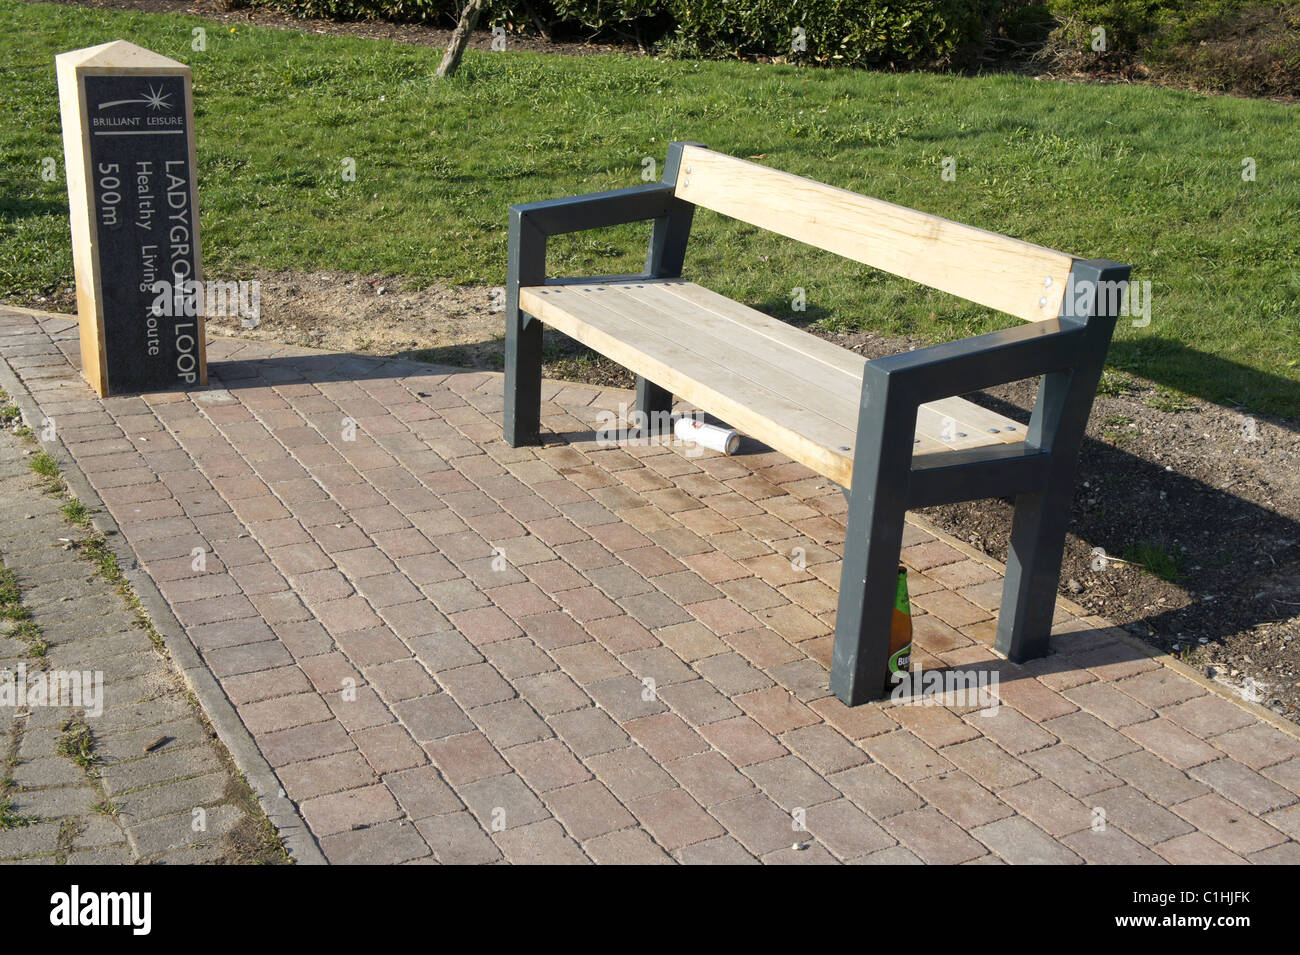 Ladygrove Loop, Didcot, Oxfordshire, healthy Living Route, Park bench with beer bottle and can. Anti Social behavior. - Stock Image